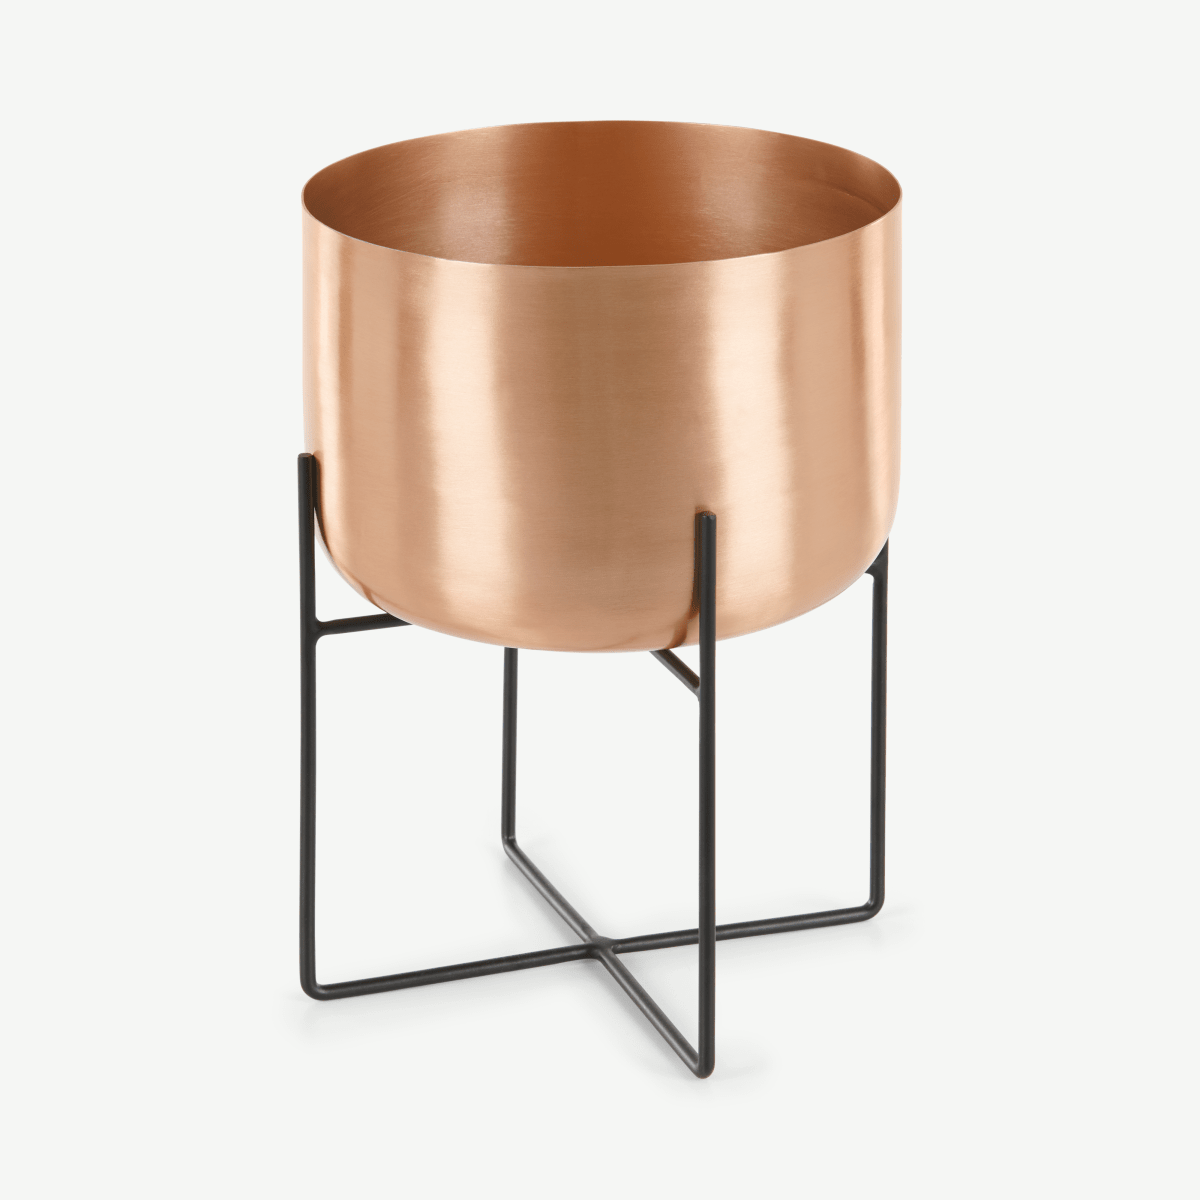 Salix-Large-Planter-with-Stand-Copper_26999554563.jpg